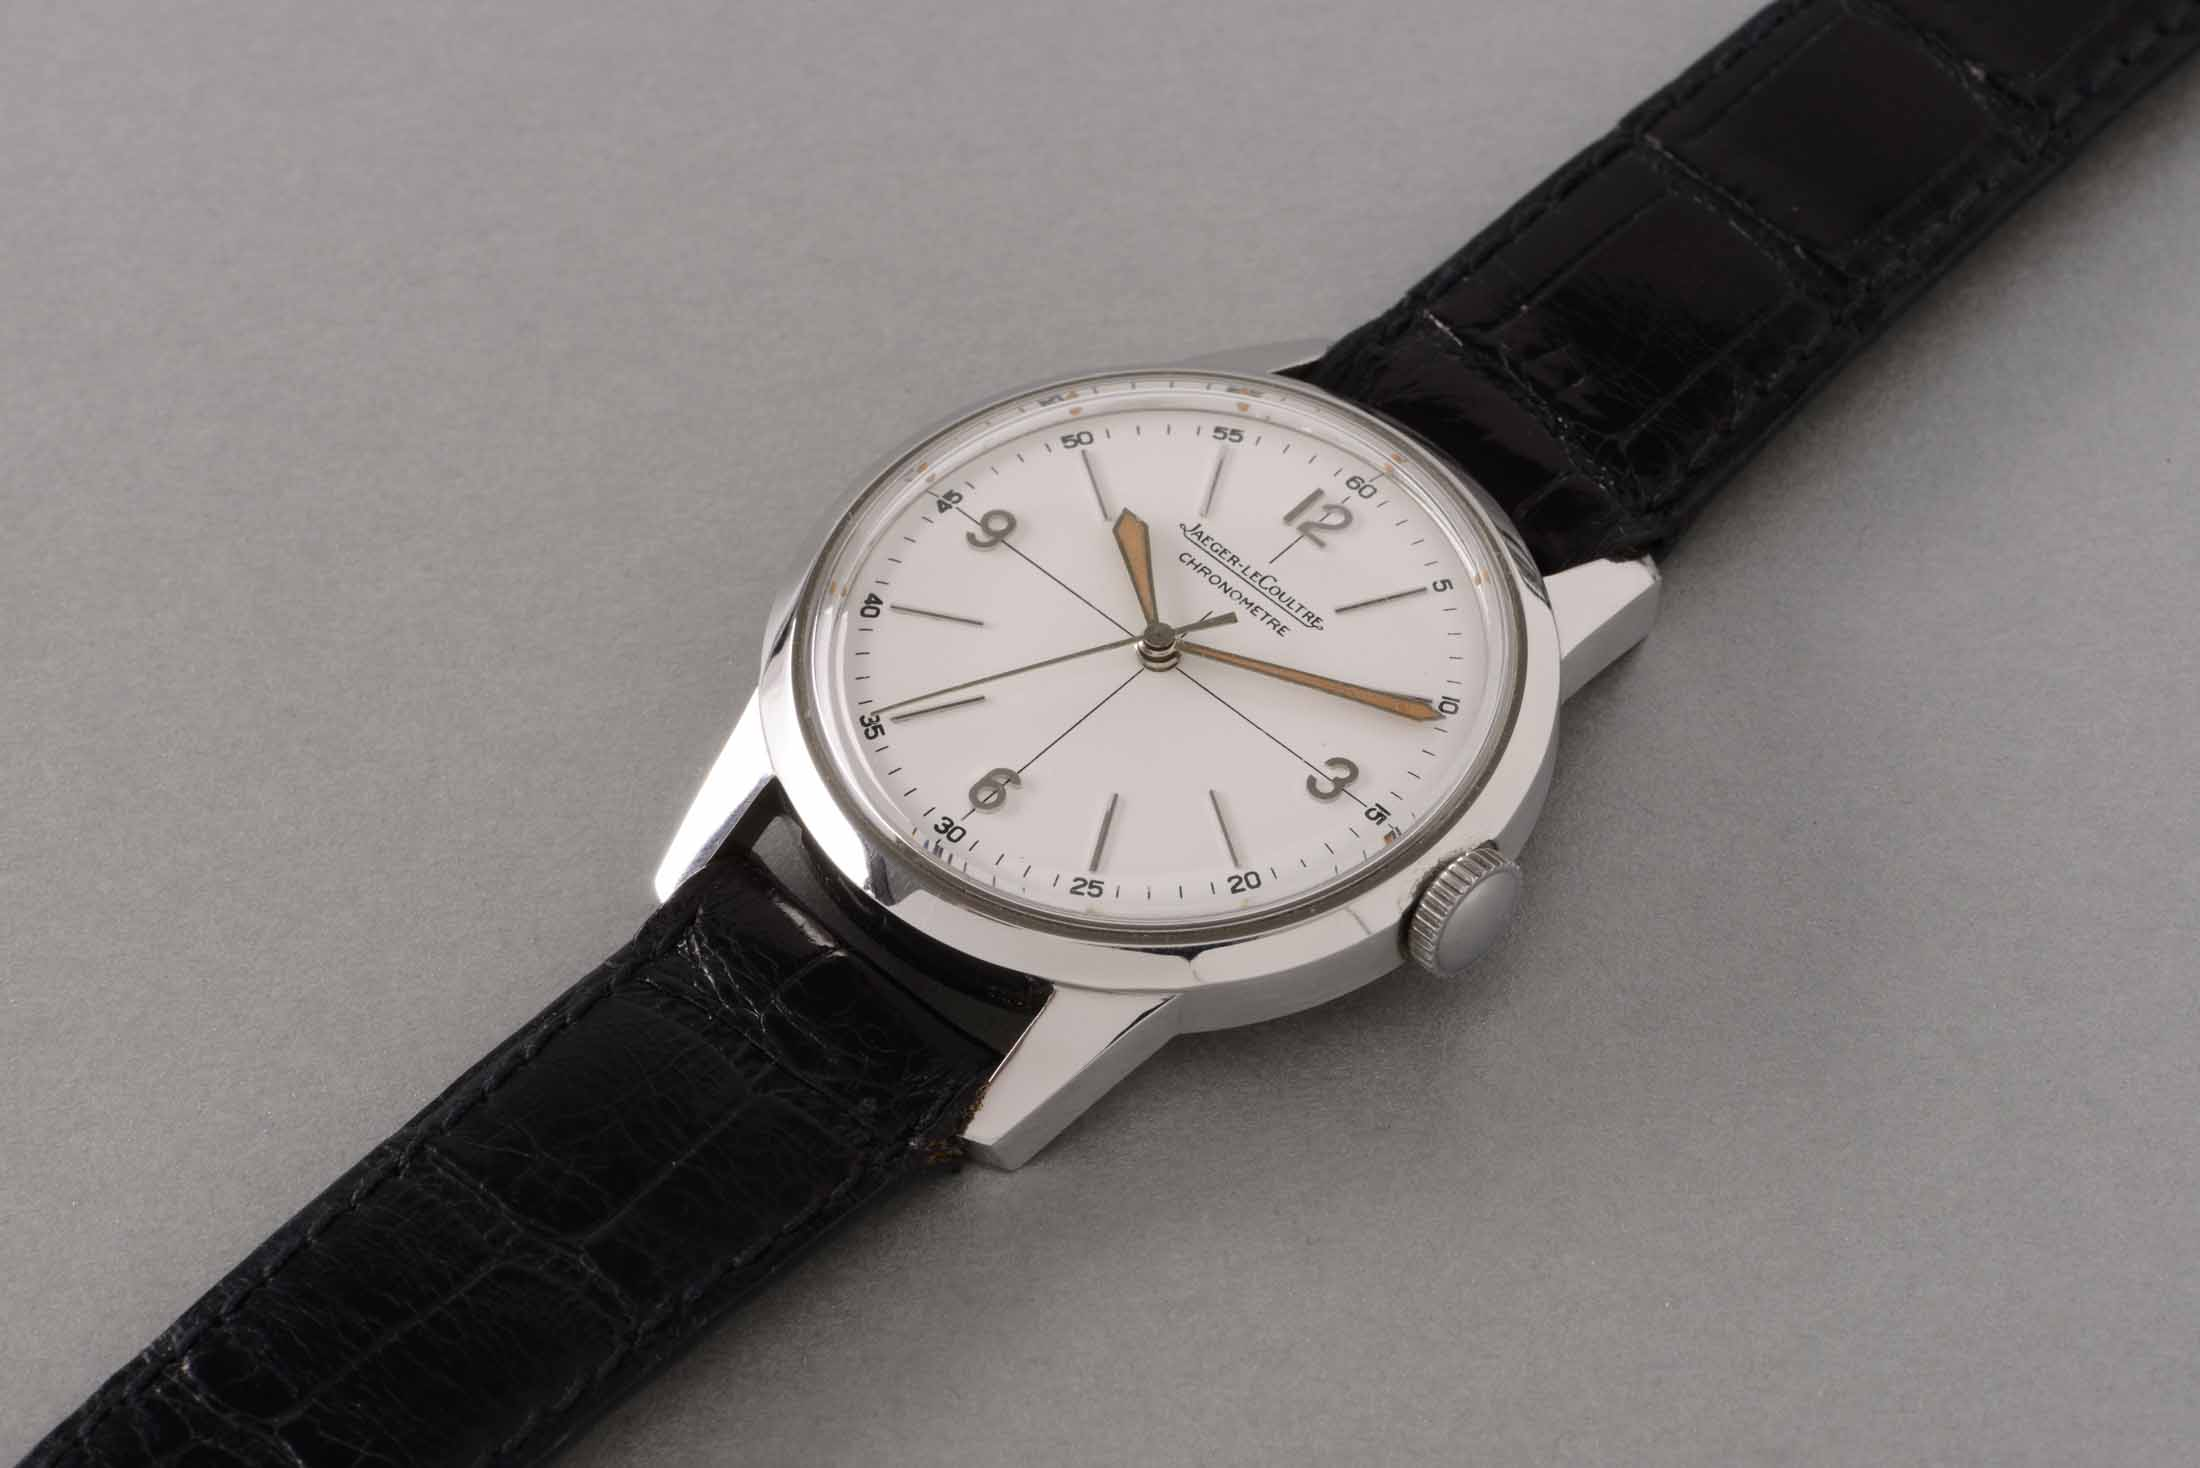 Jaeger-LeCoultre Stainless-Steel Chronograph Wristwatch